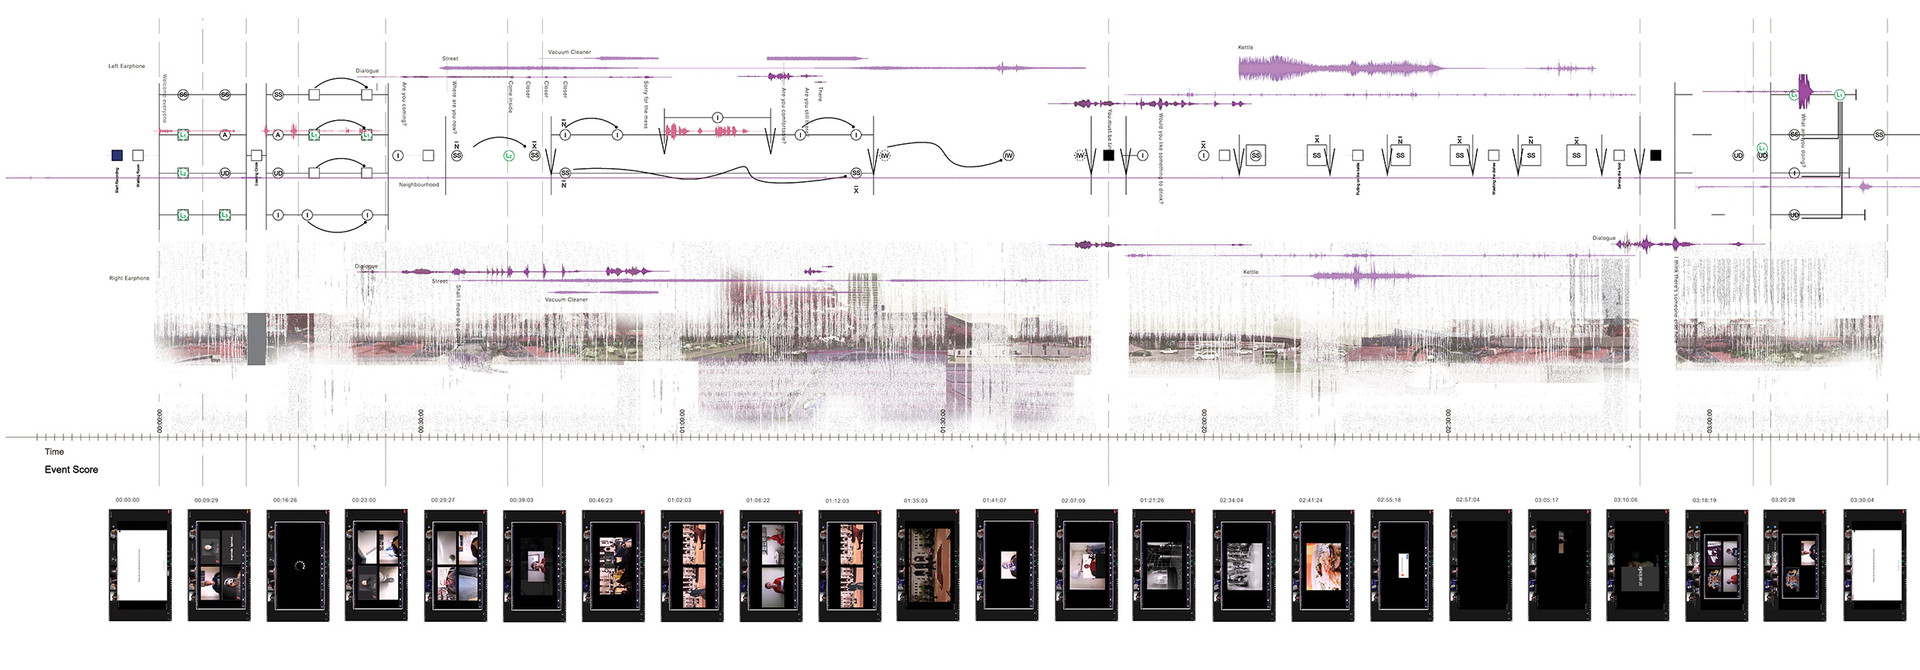 MDP: Script of the Institute of the Domestic 2.0 detailing the sequenced layering of real and virtual space, the inhabitation by live and recorded guests, ambient sound and dialogue. Hugo, C. Unit 13. 2020.